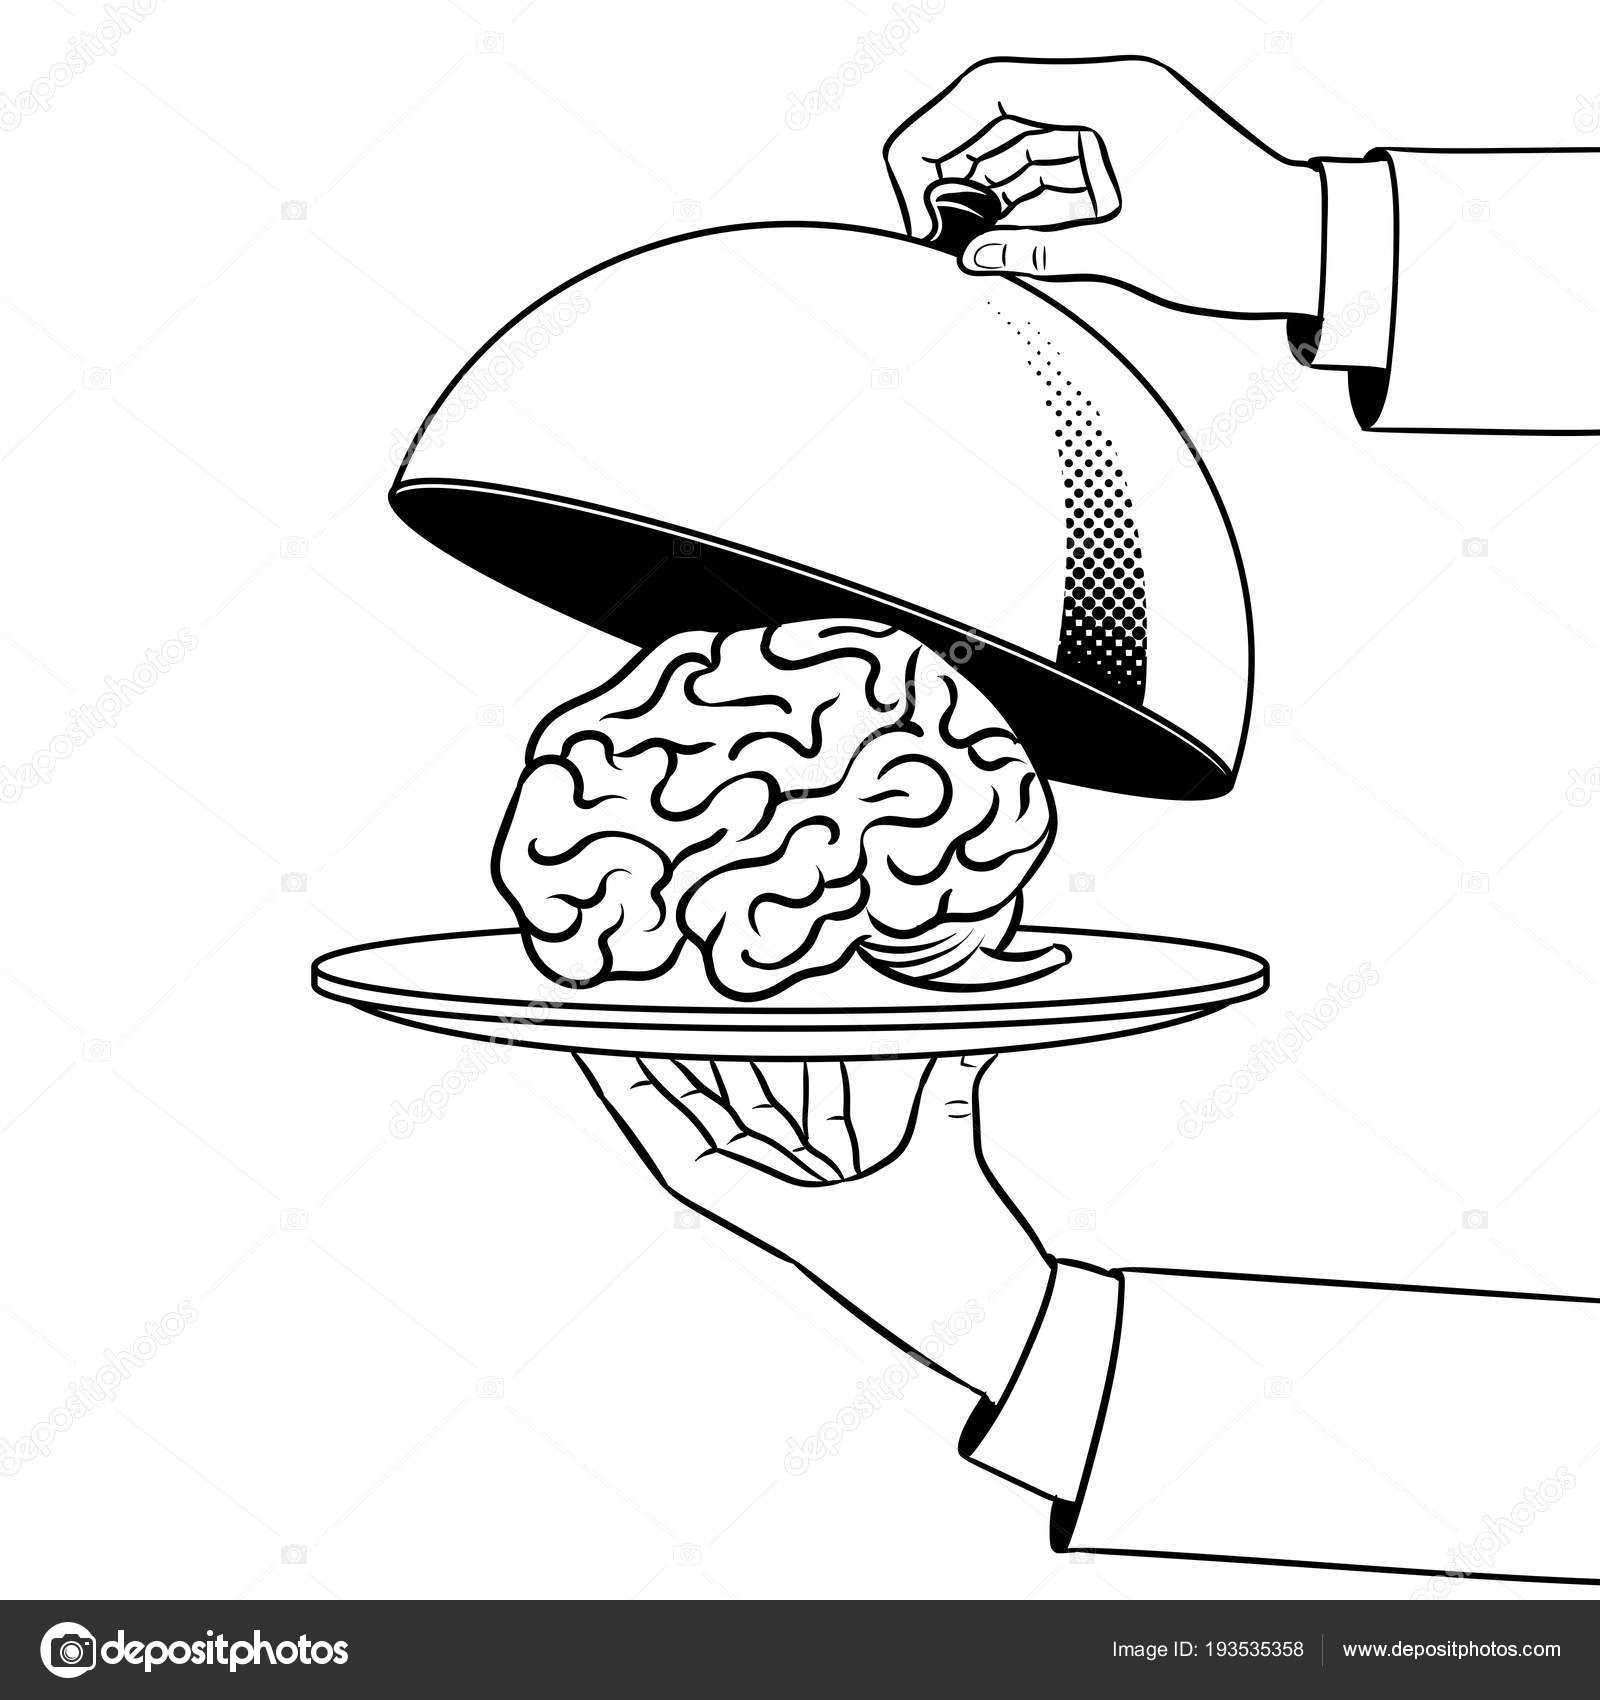 Cerebro en plato con cloche para colorear vector libro — Archivo ...